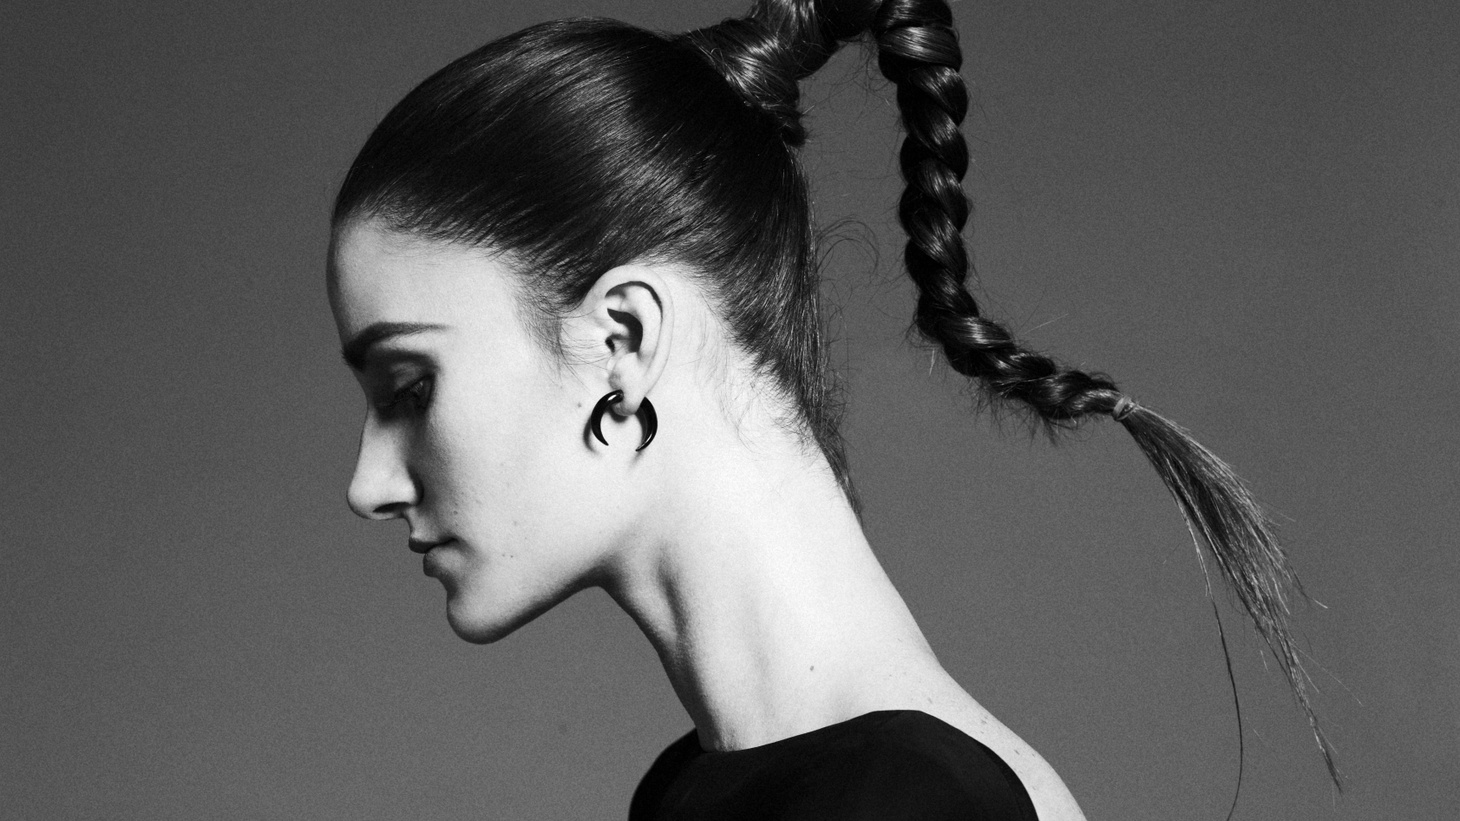 """Newcomer Niia describes her sound as a """"jazz singer in a spaceship."""" Mentored by Wyclef Jean and working with producer Robin Hannibal (Rhye/Quadron), her debut LP is still to come and will feature """"Body""""."""